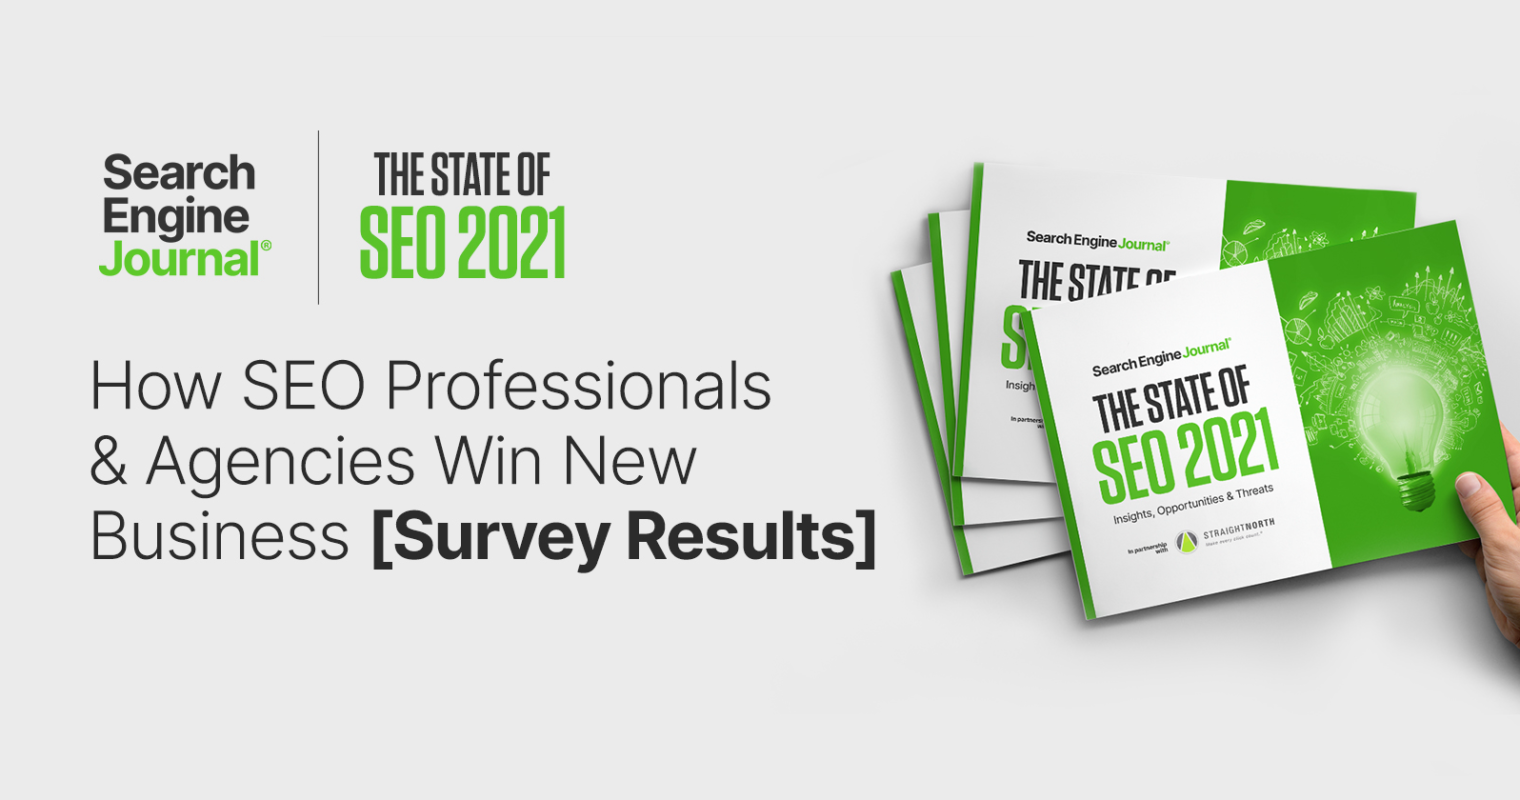 How SEO Professionals & Agencies Win New Business [Survey Results]